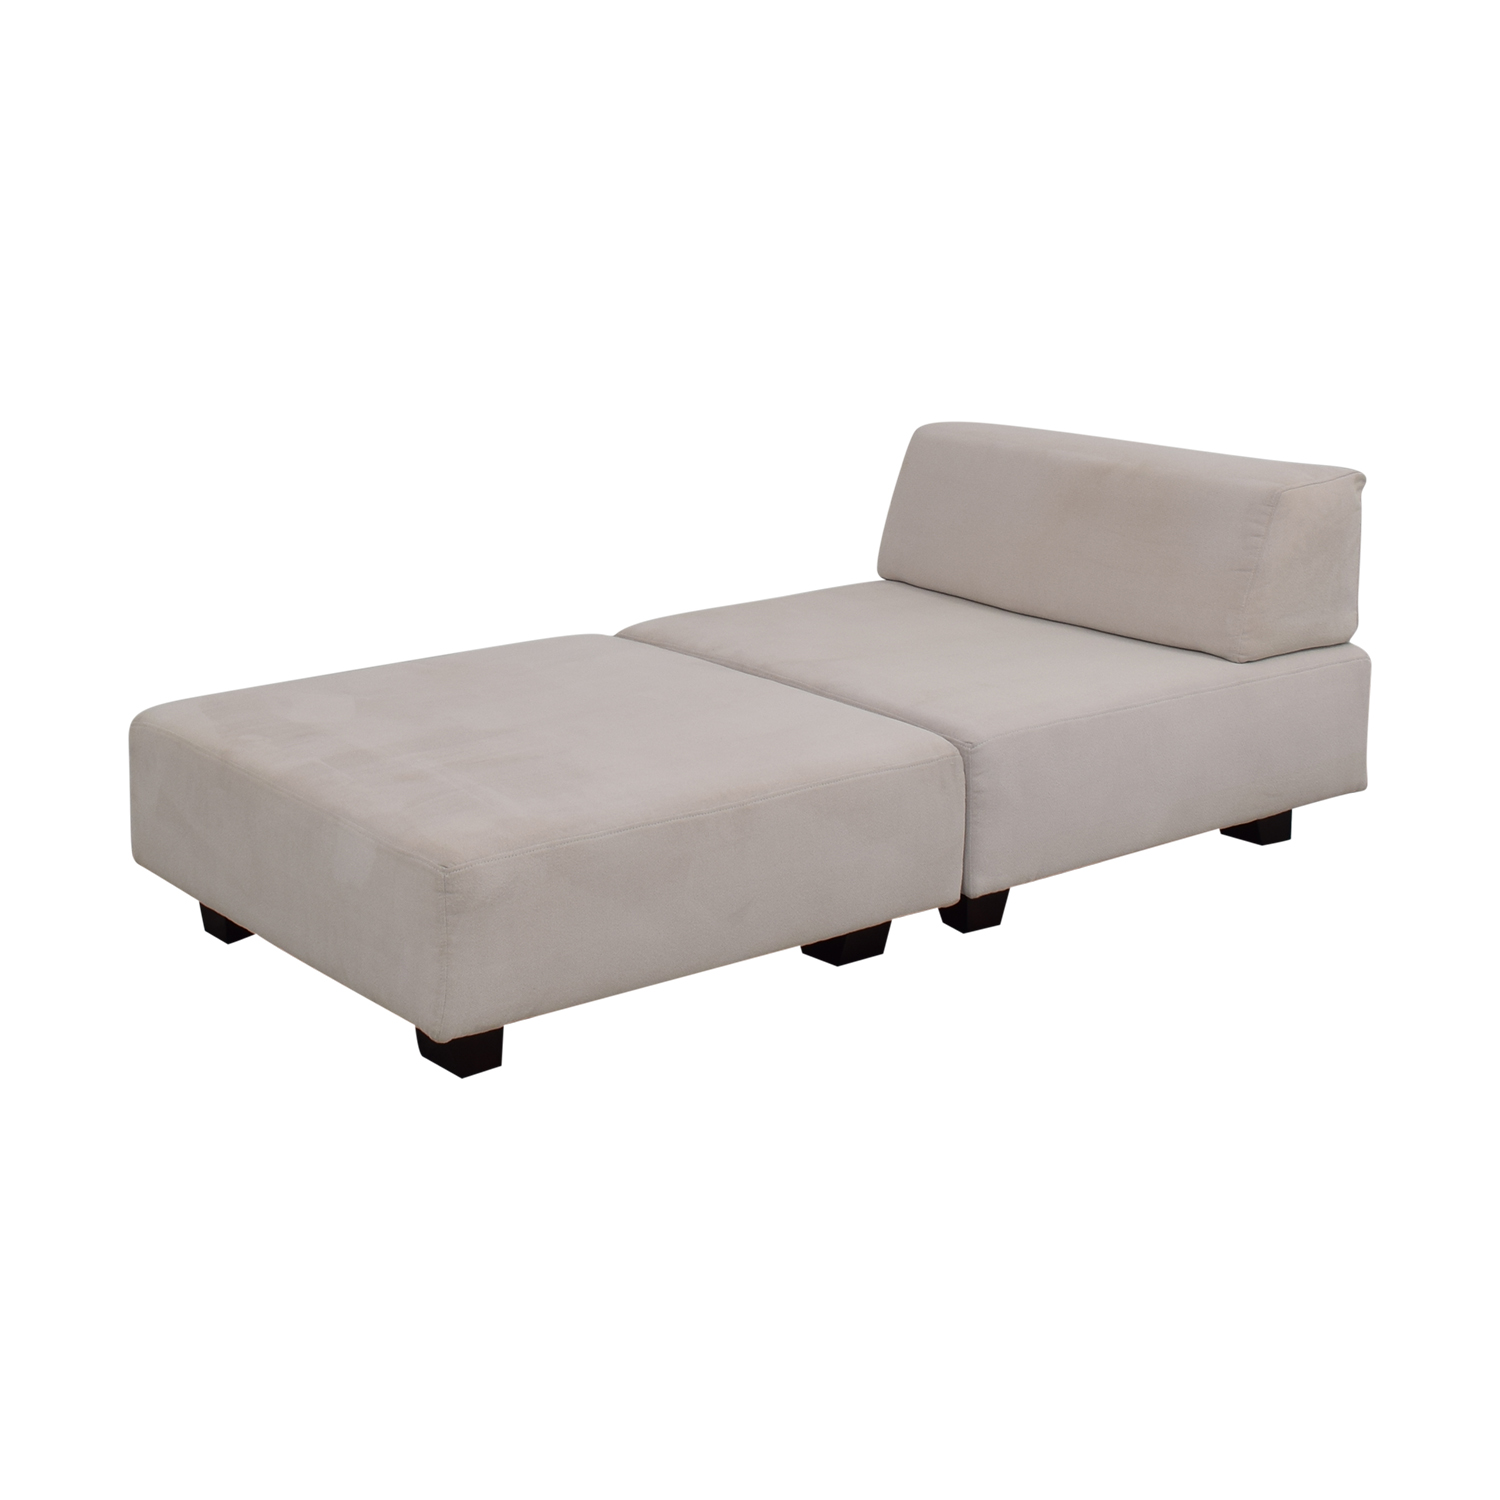 West Elm West Elm Tillary White Chaise Lounge dimensions